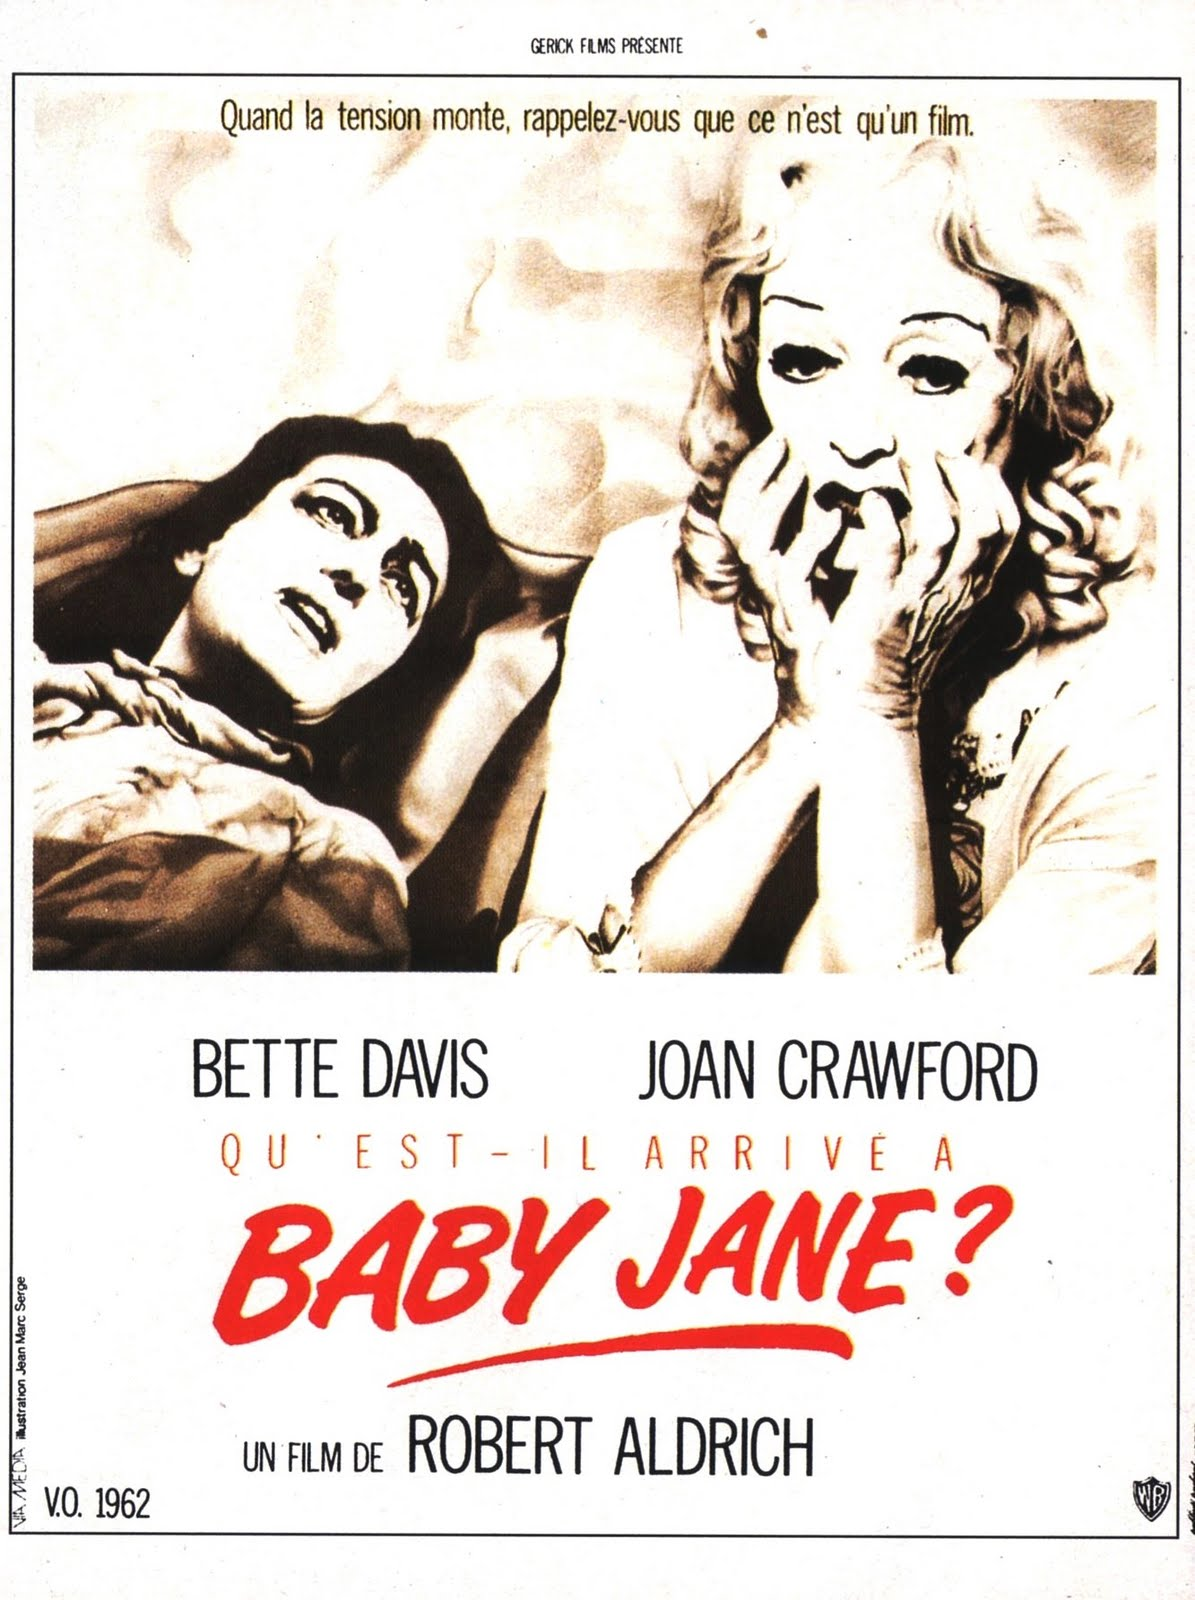 http://3.bp.blogspot.com/-Grae3kMnjhE/UQtGD3bXD1I/AAAAAAAAPkE/he0Ai0eBjzE/s1600/what_ever_happened_to_baby_jane_poster_07.jpg